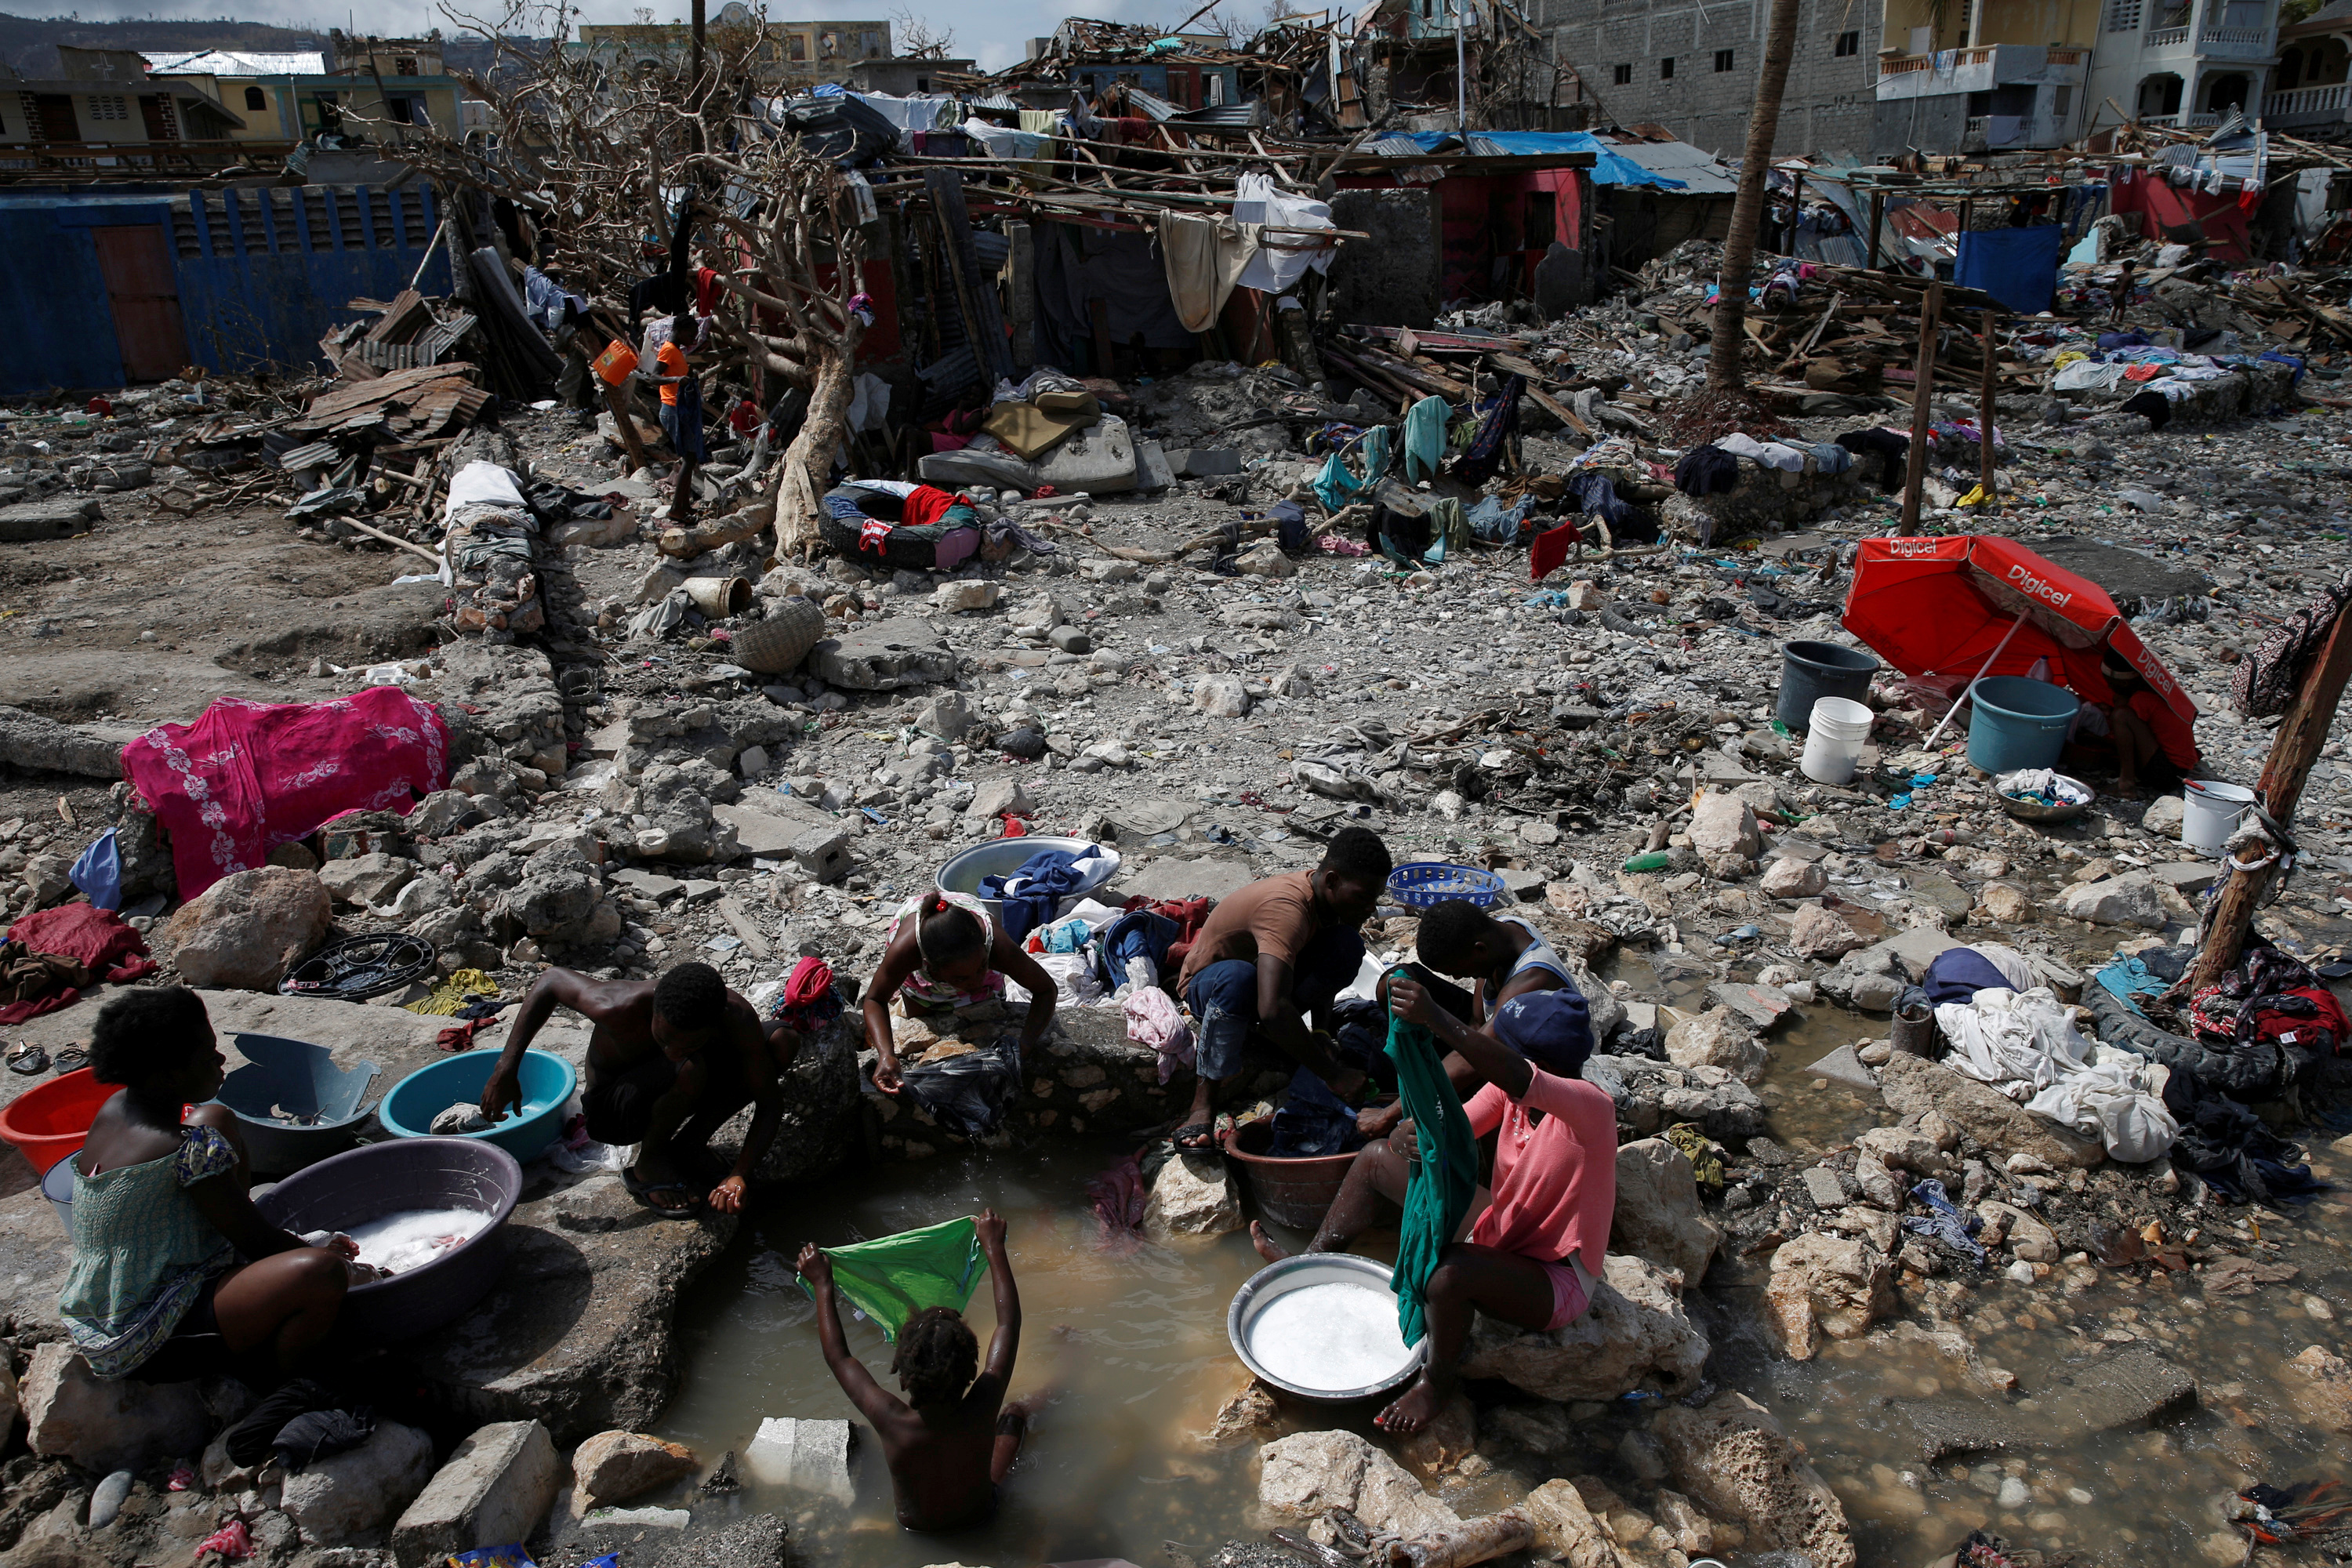 People wash their clothes on a beach near destroyed houses. Photo by Carlos Garcia Rawlins/Reuters